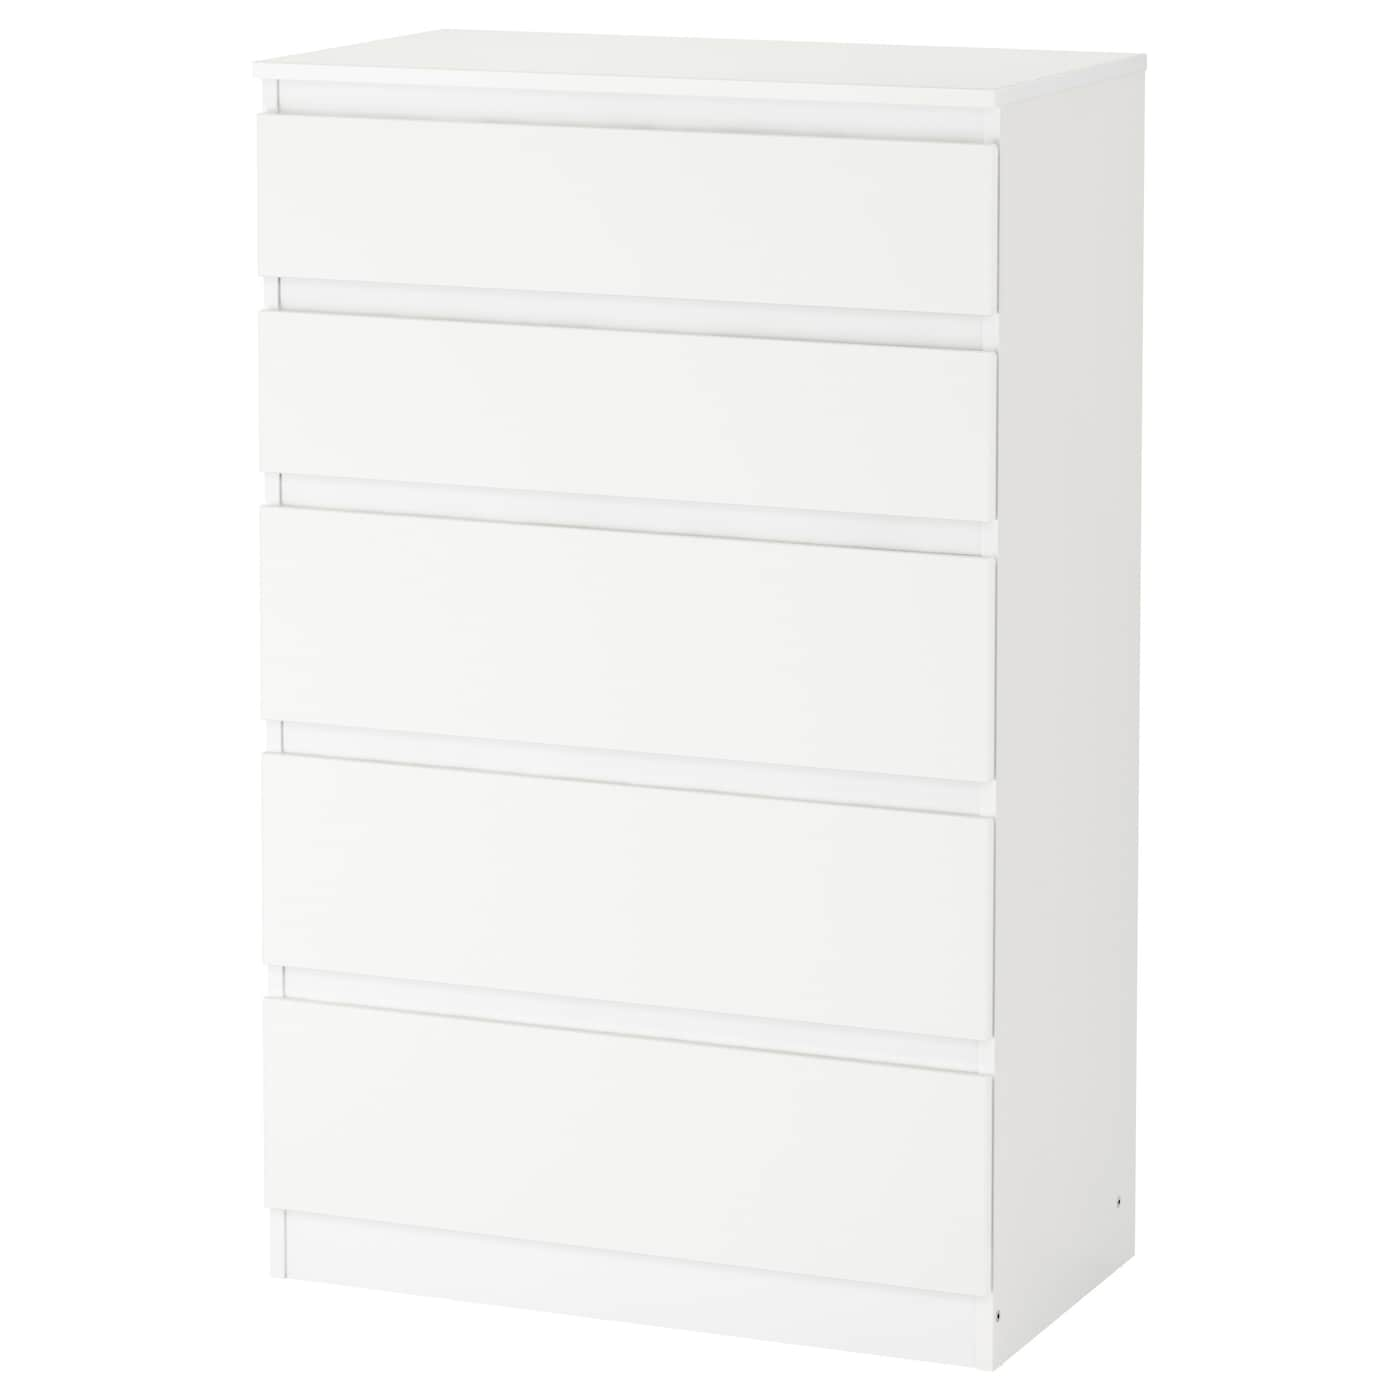 kullen commode 5 tiroirs blanc 70 x 112 cm ikea. Black Bedroom Furniture Sets. Home Design Ideas